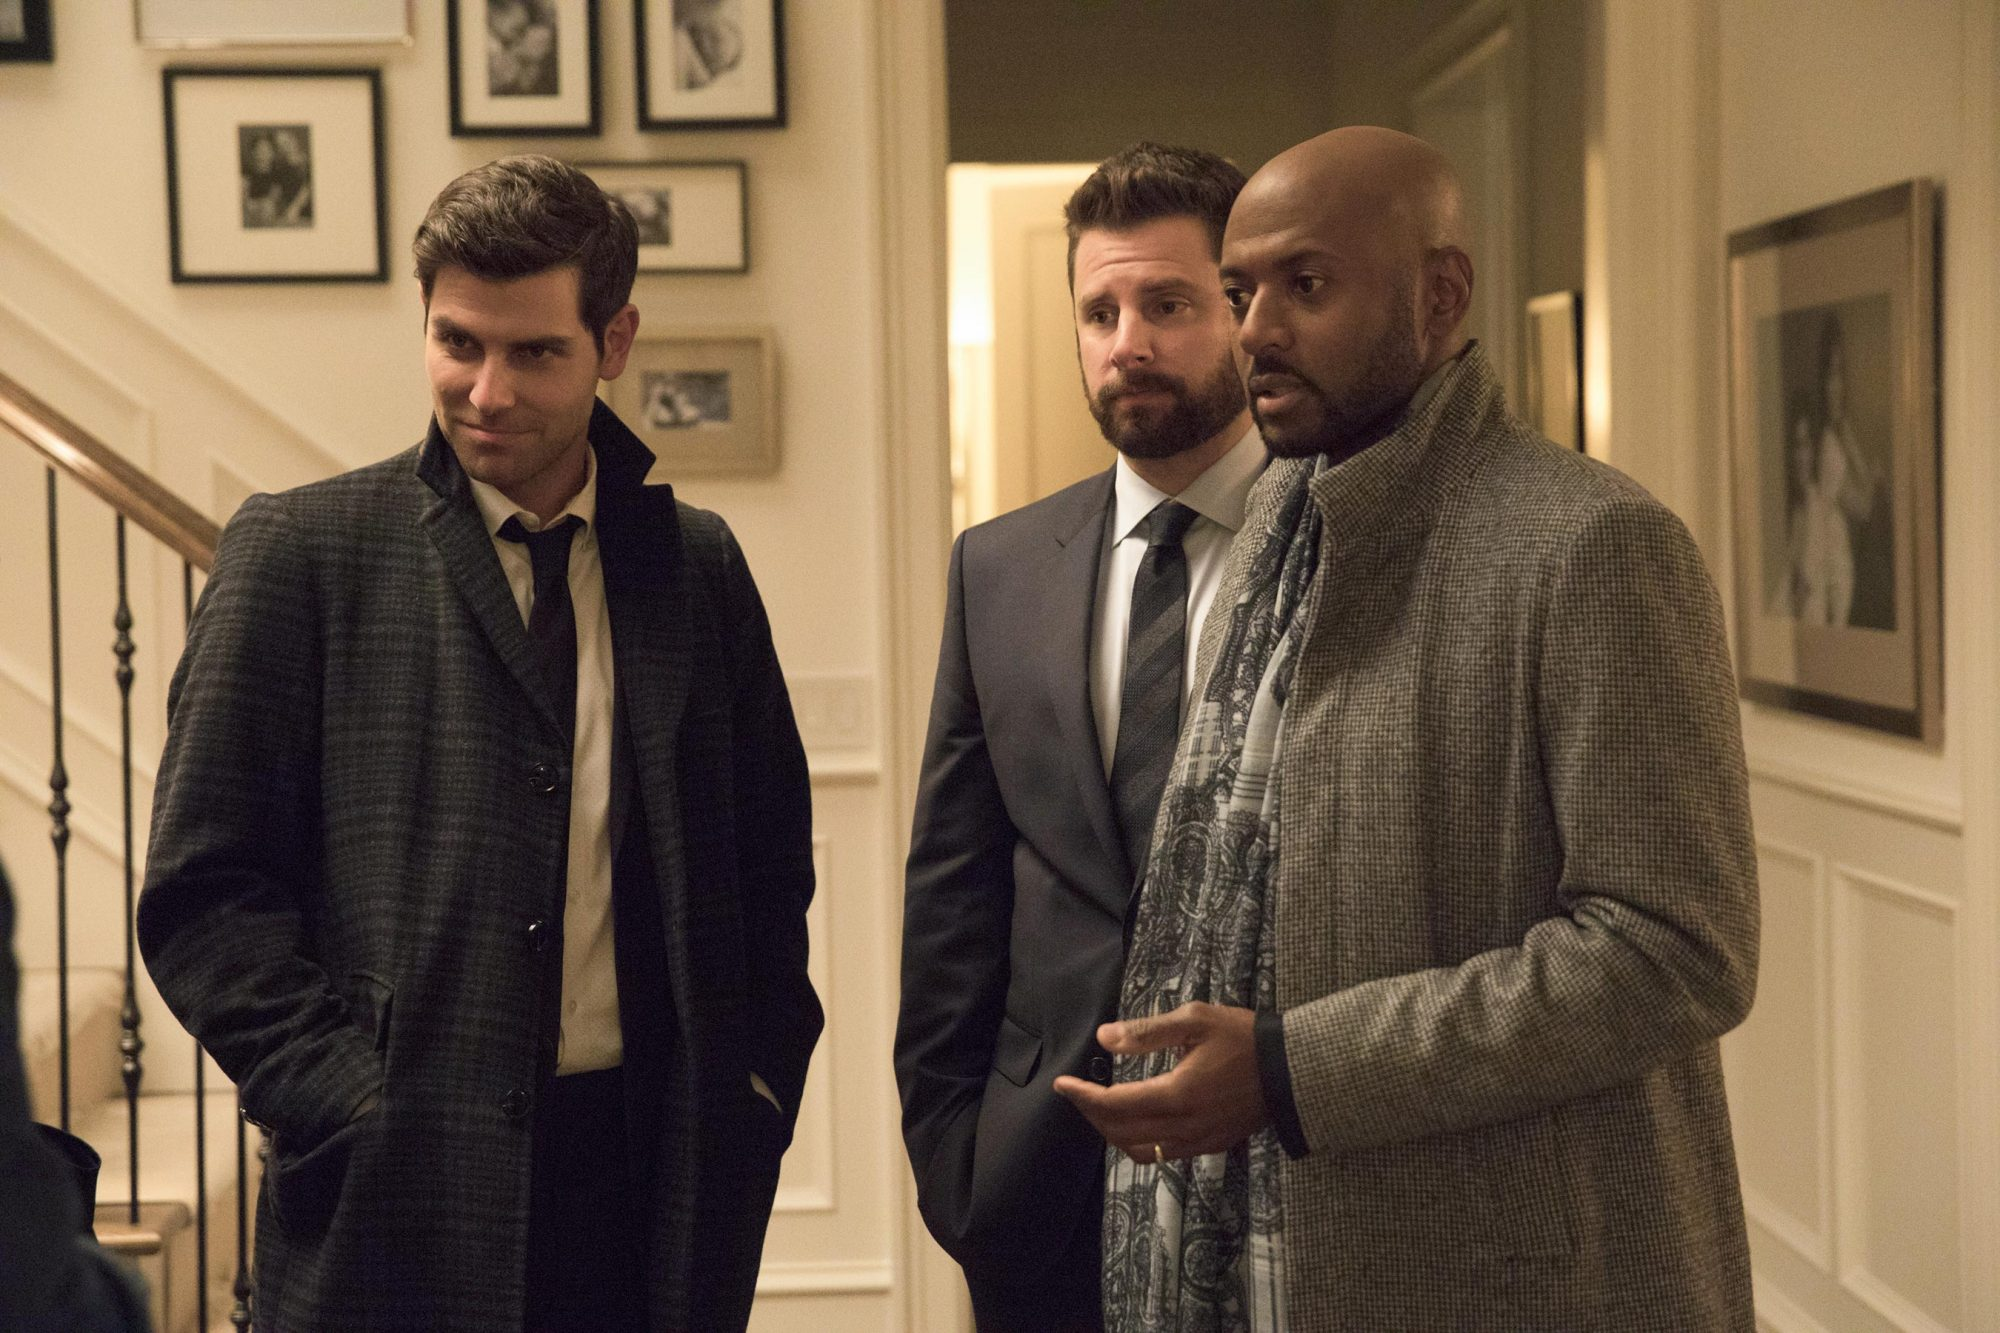 DAVID GIUNTOLI, JAMES RODAY, ROMANY MALCO JR